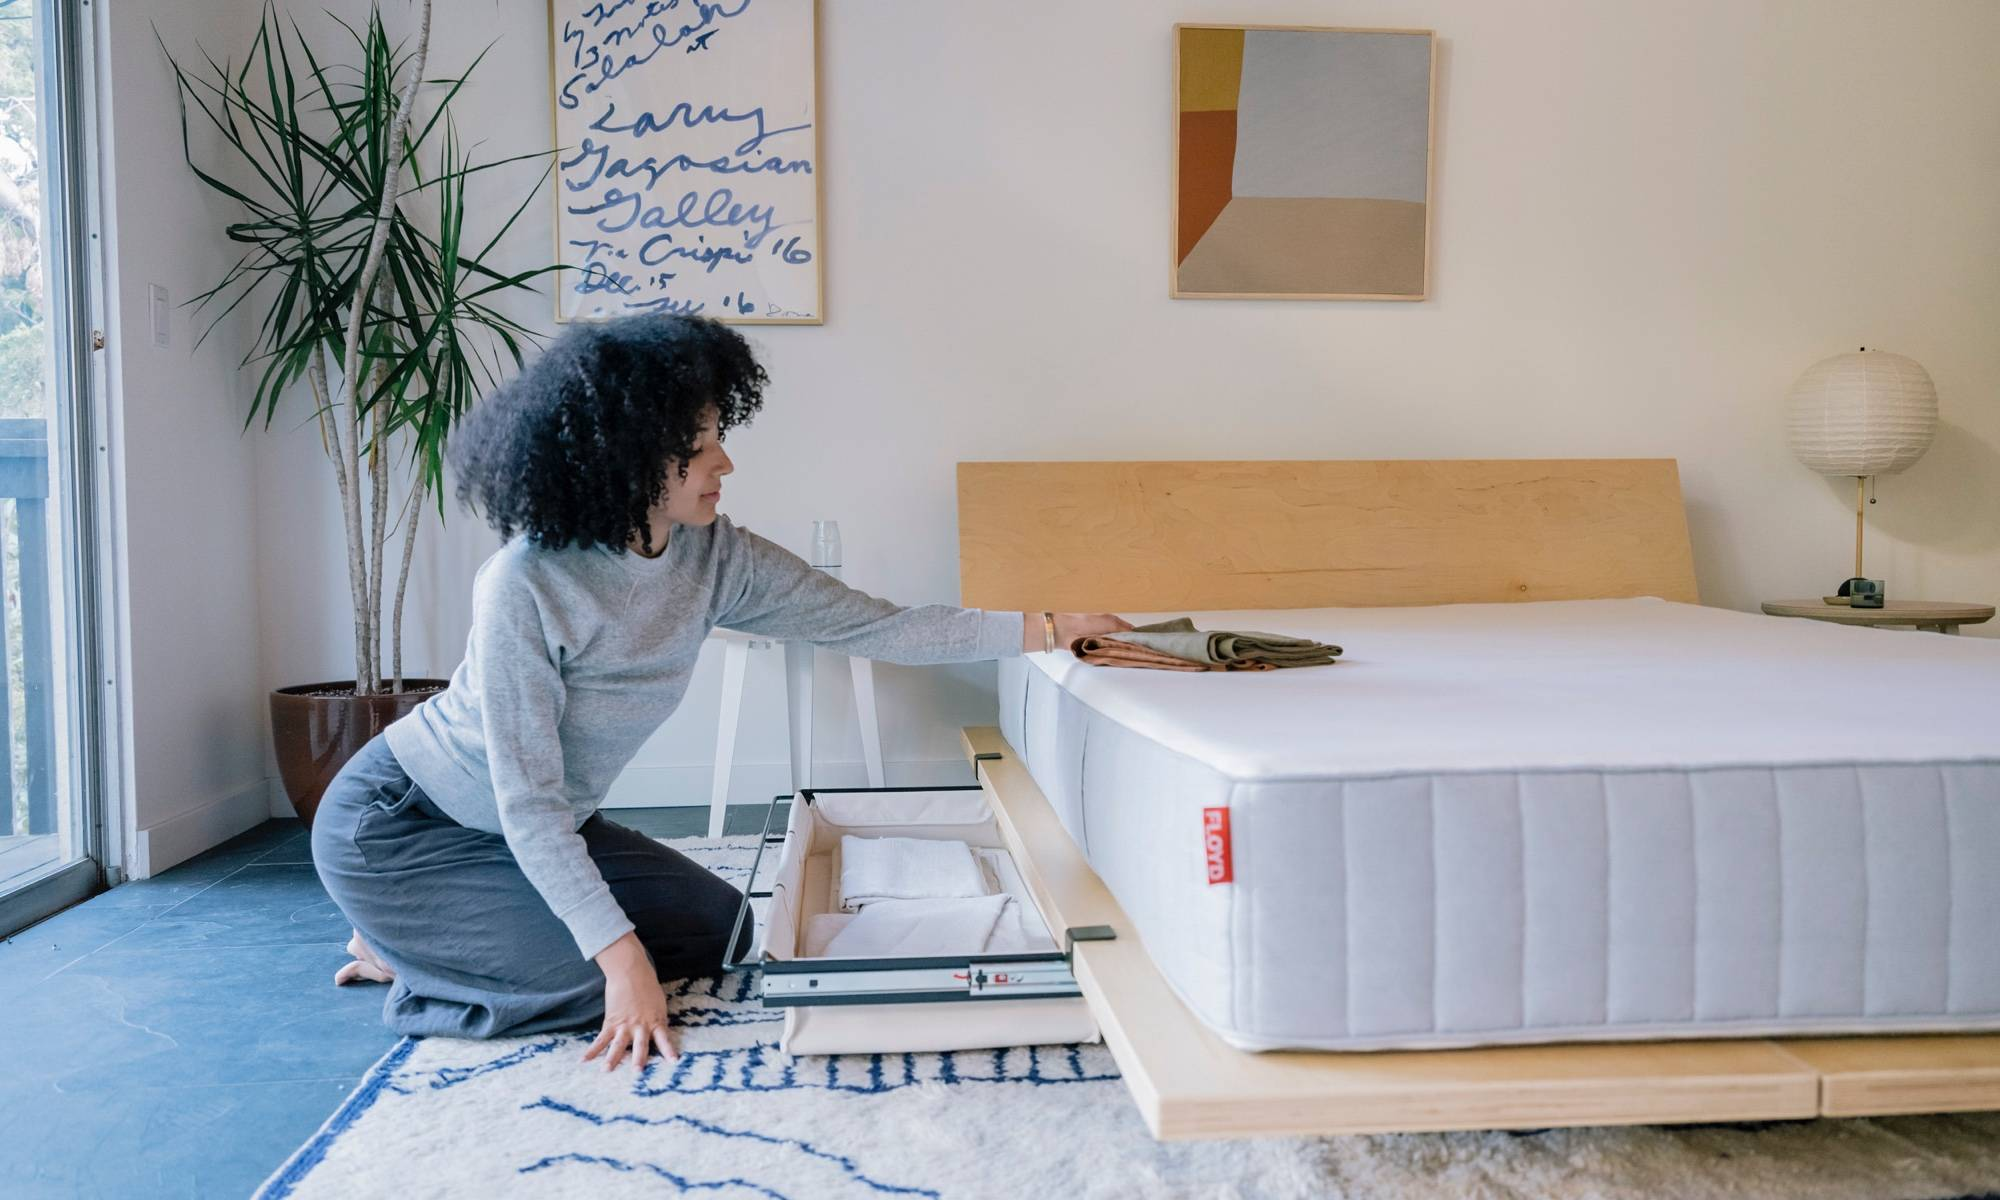 A woman putting away sheets in her Floyd underbed storage.